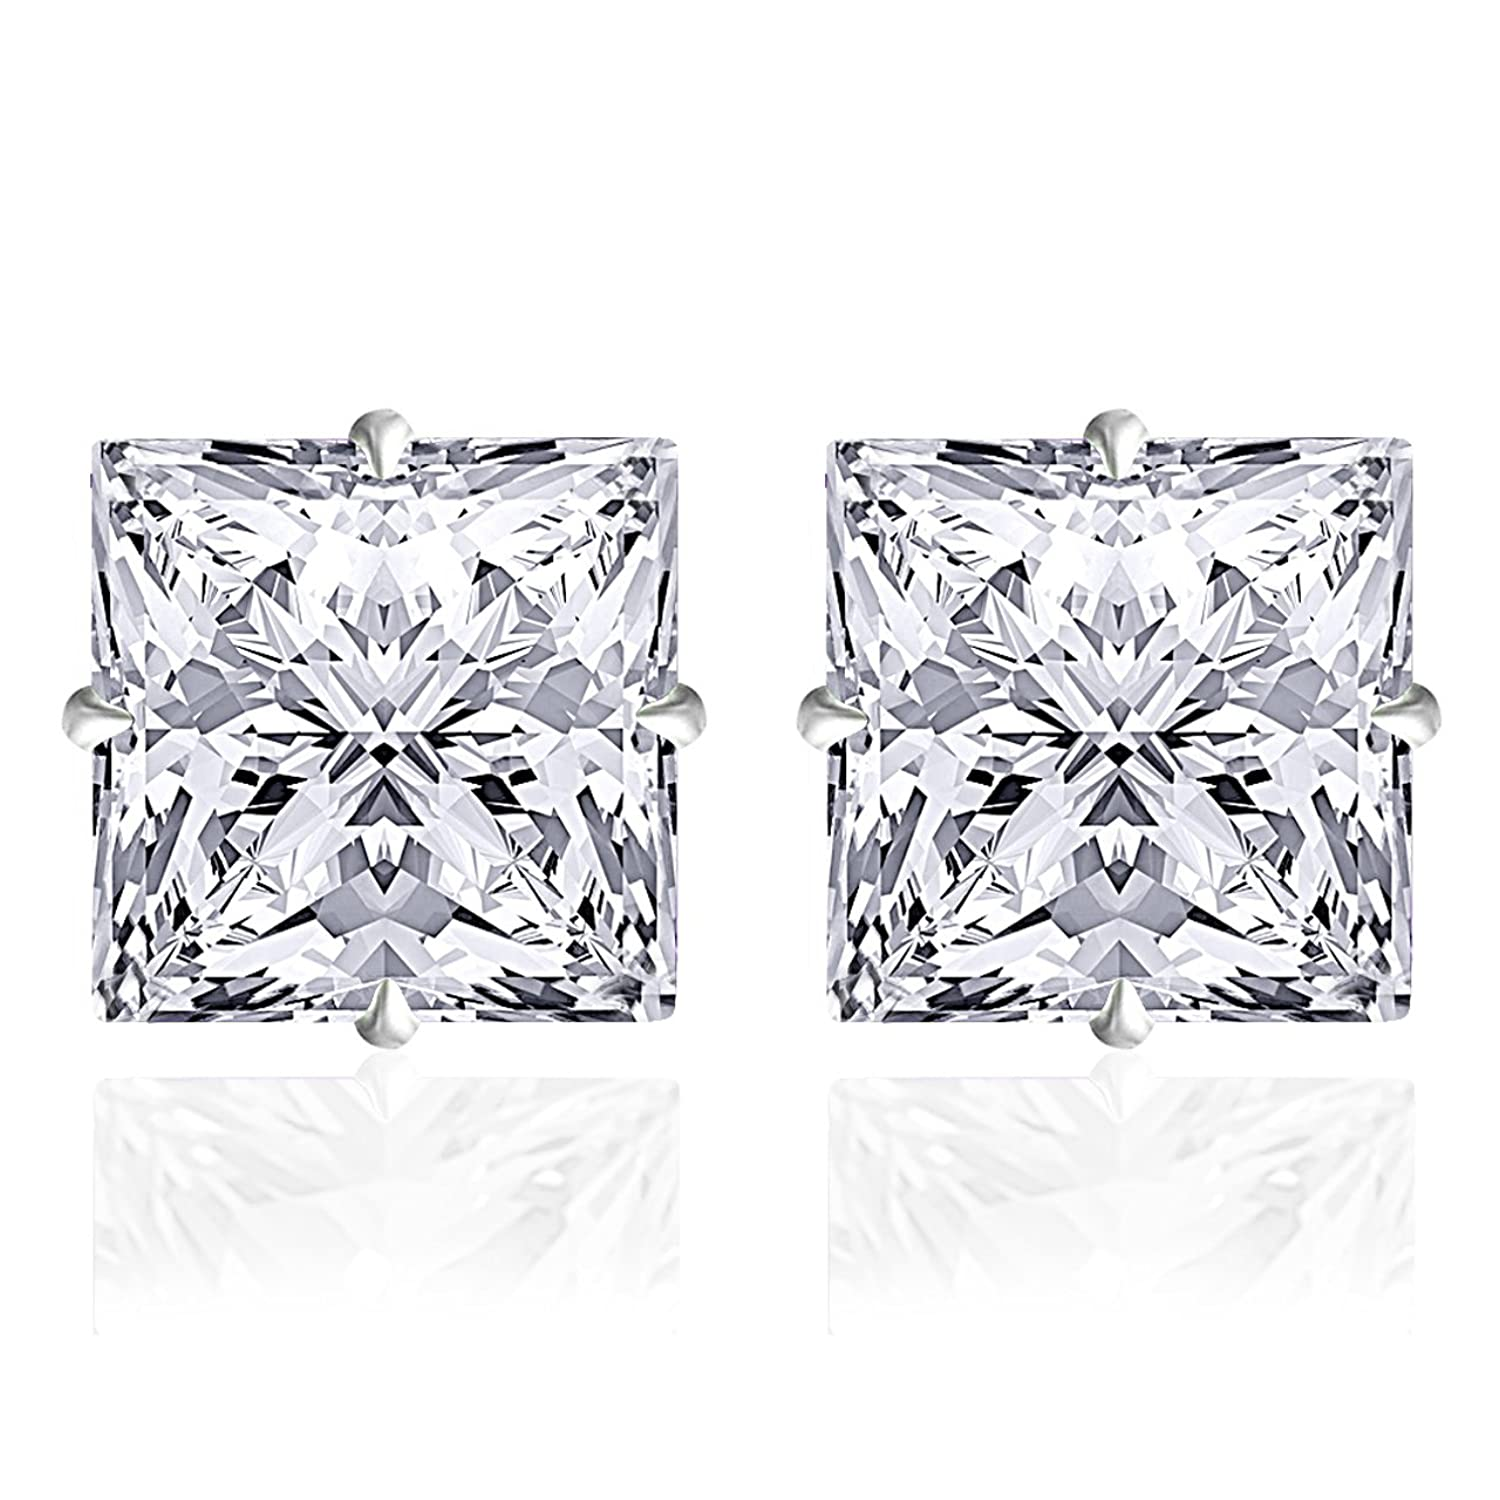 14k Solid White Gold 4mm Princess-Cut White CZ Stud Earrings by Orchid Jewelry